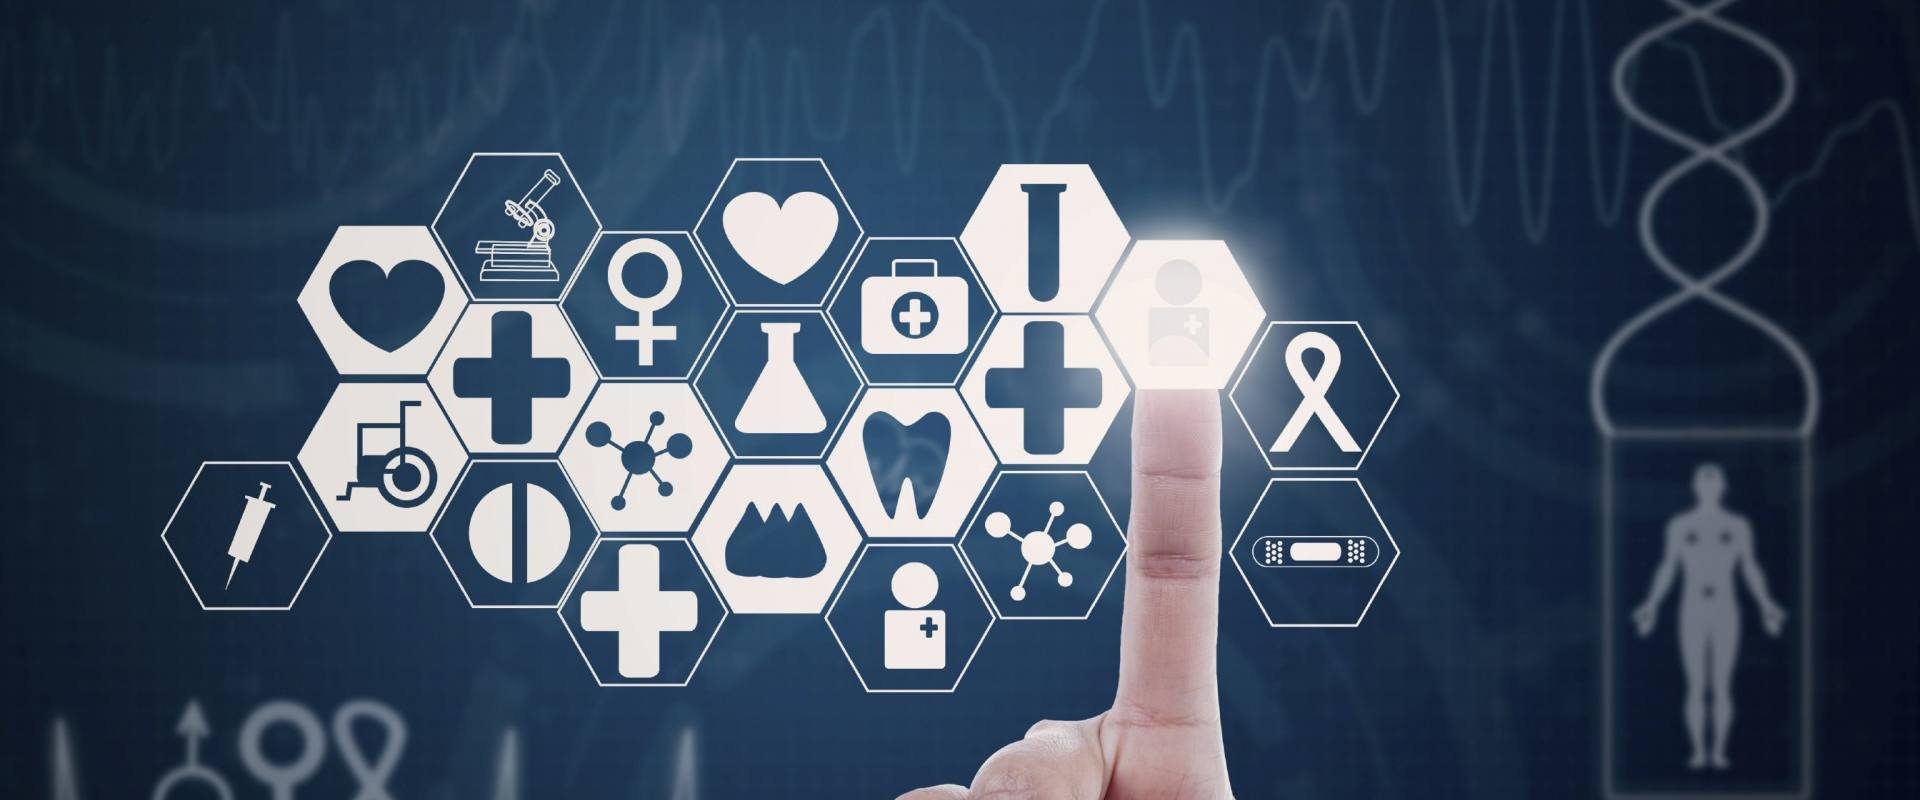 Healthcare Payers | Acer Innovation